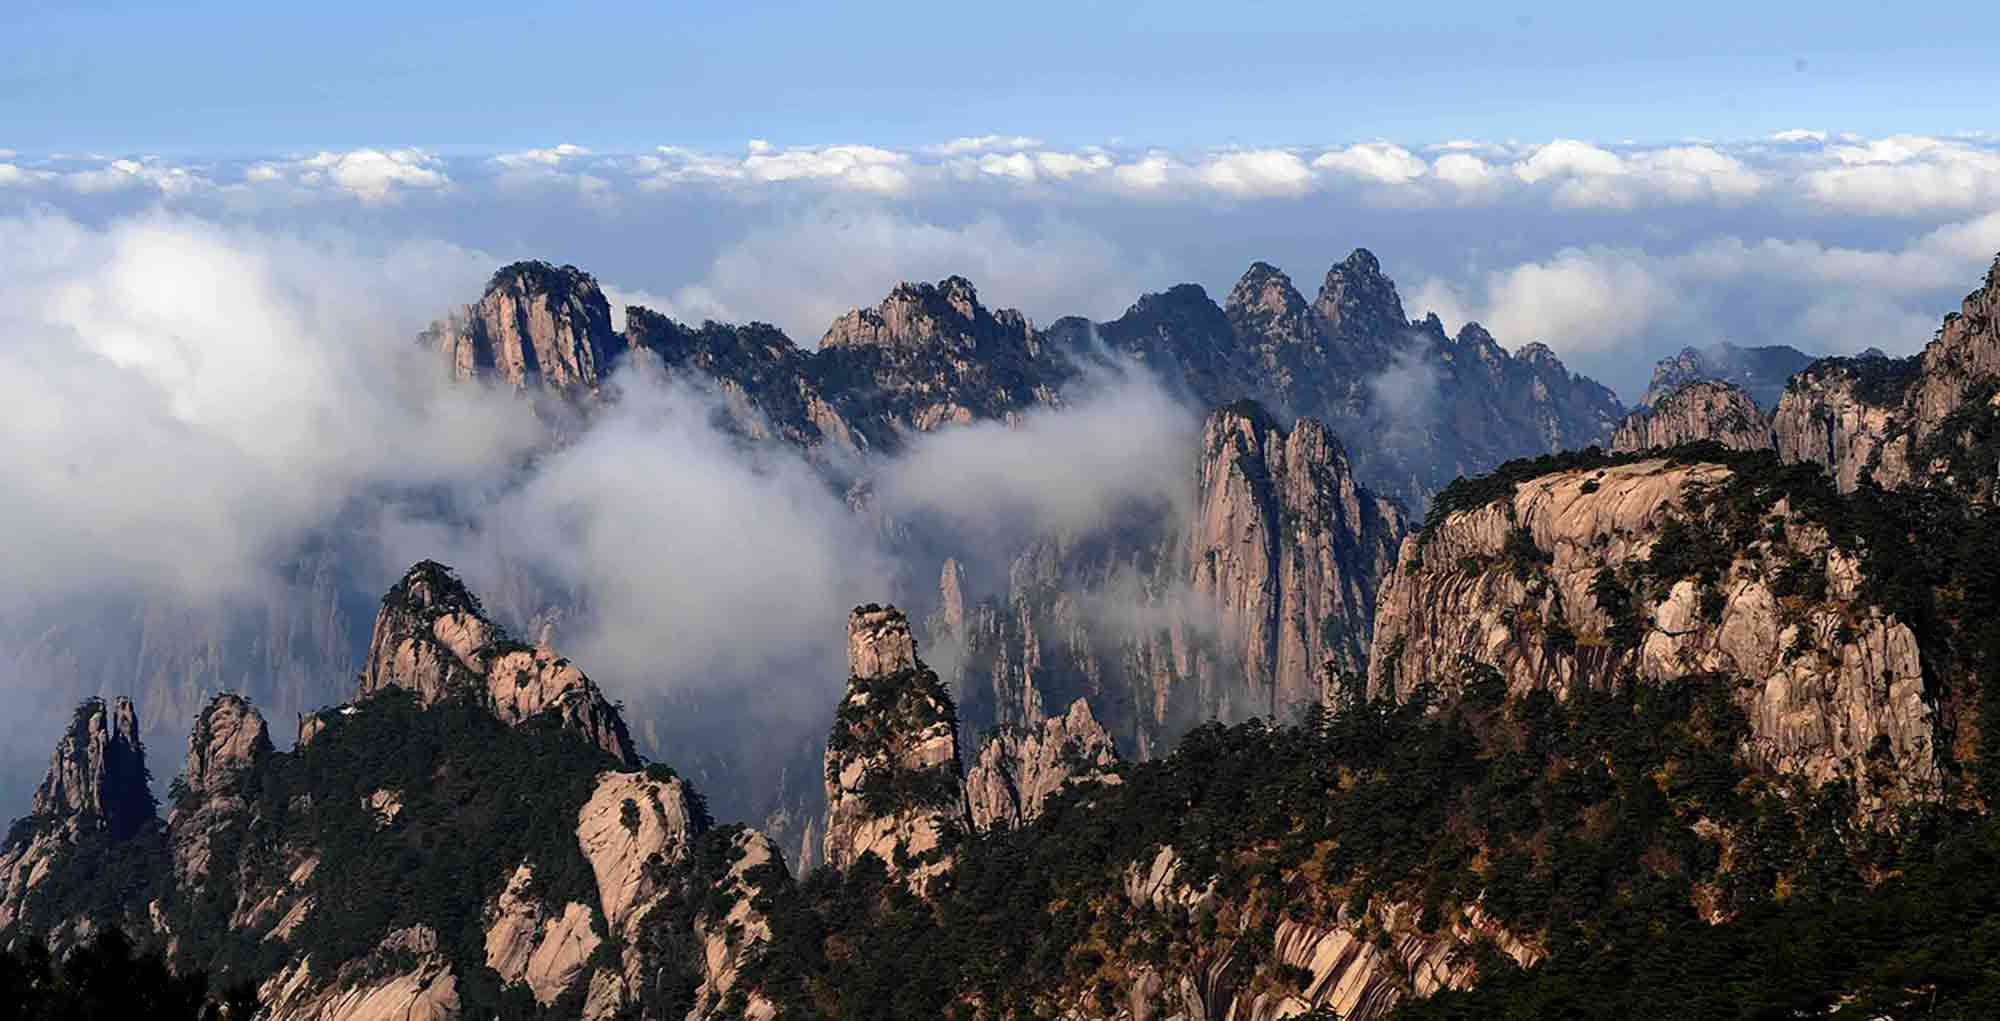 montagne_jaune_thé_Huang_Shan_Mao_Feng